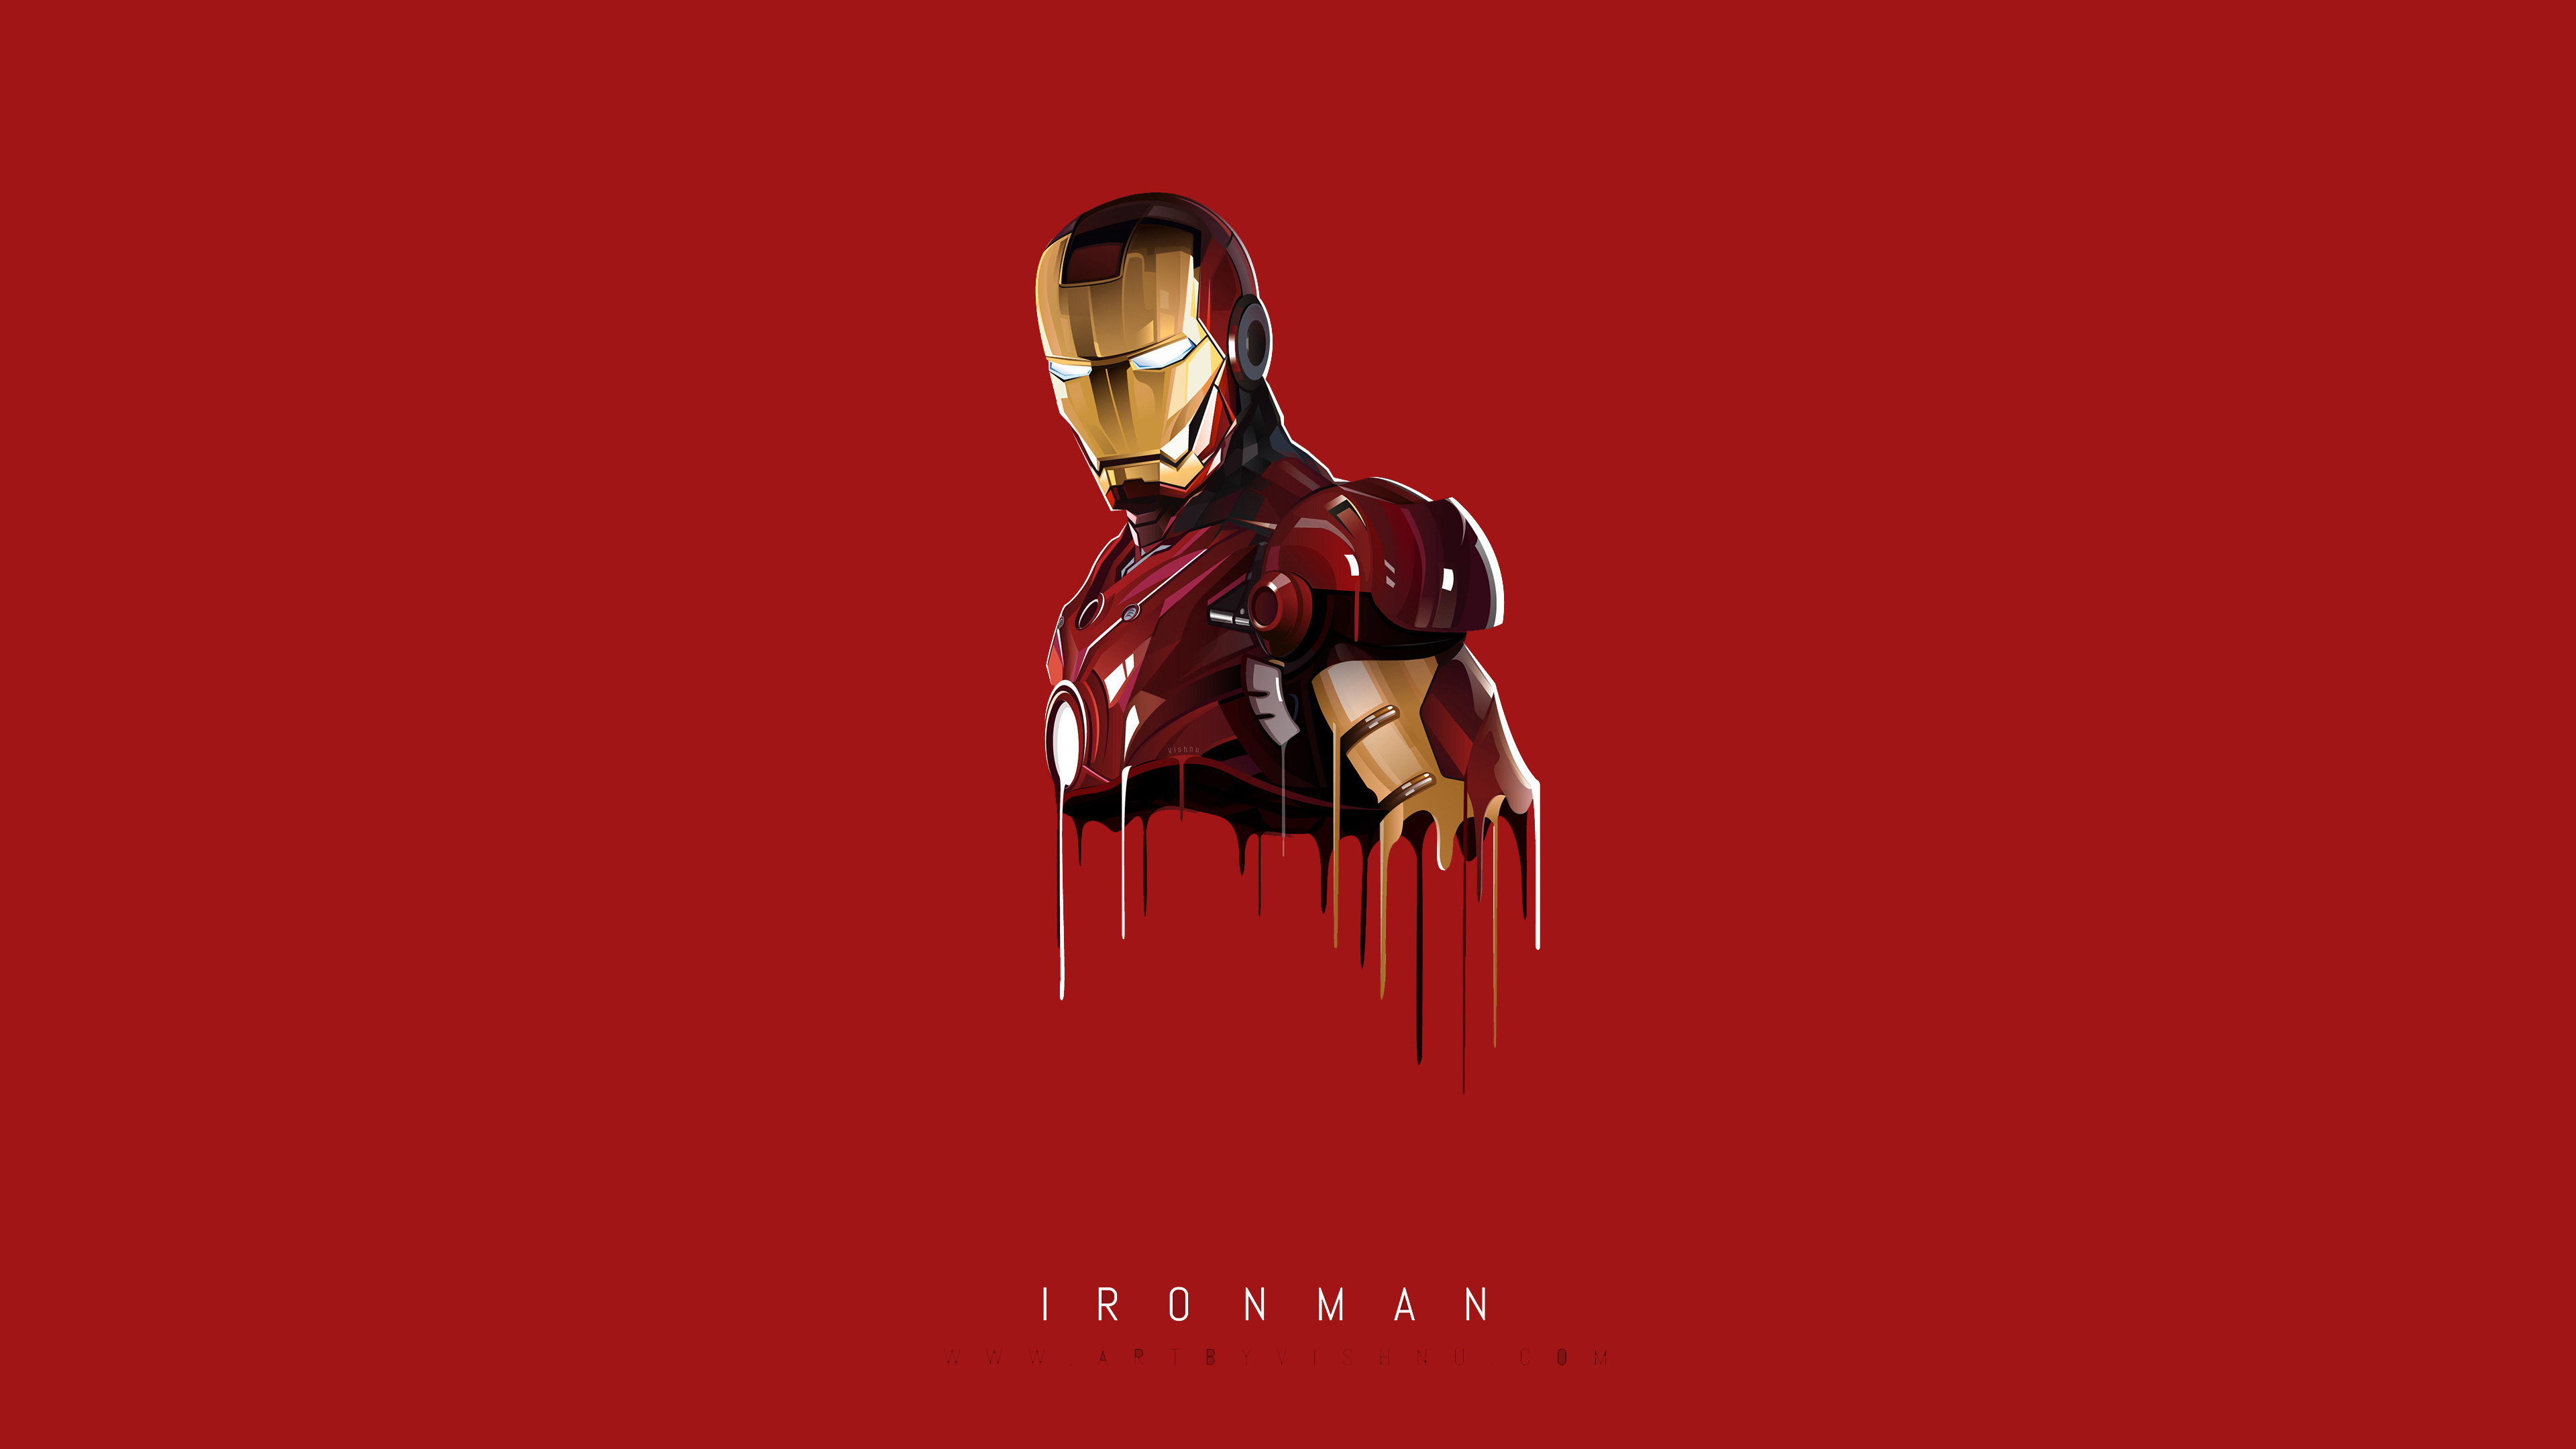 2560x1024 Iron Man Minimal 2560x1024 Resolution Hd 4k Wallpapers